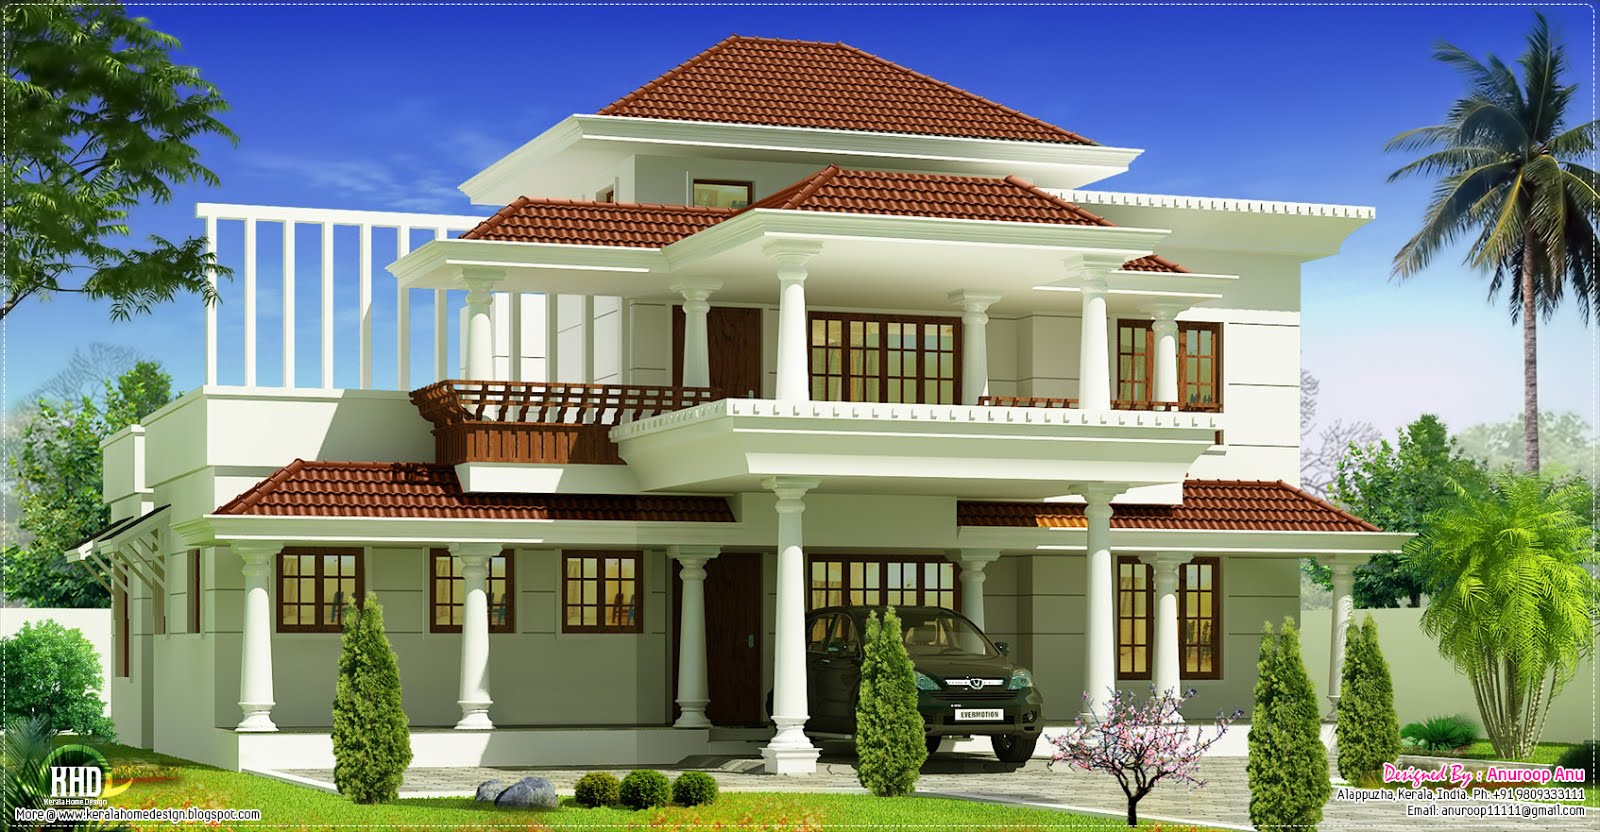 Kerala house models houses plans designs for Latest model house design